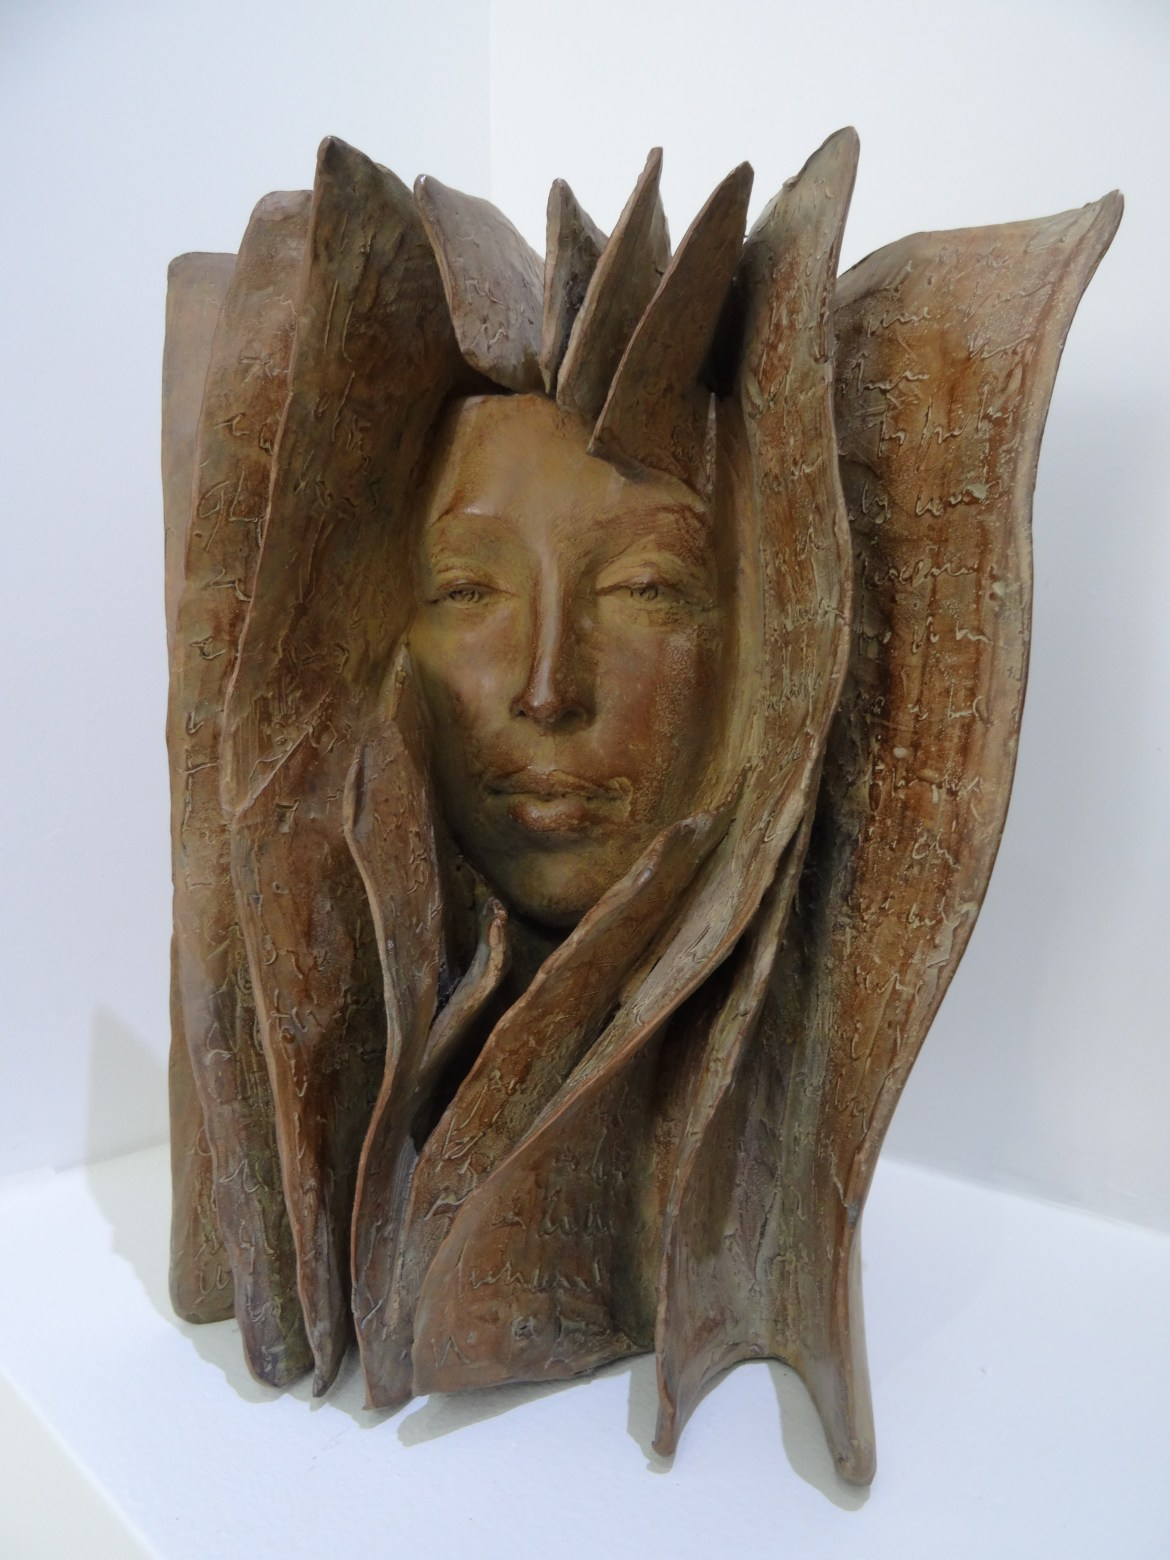 paola grizi art bronze books for sale in honfleur